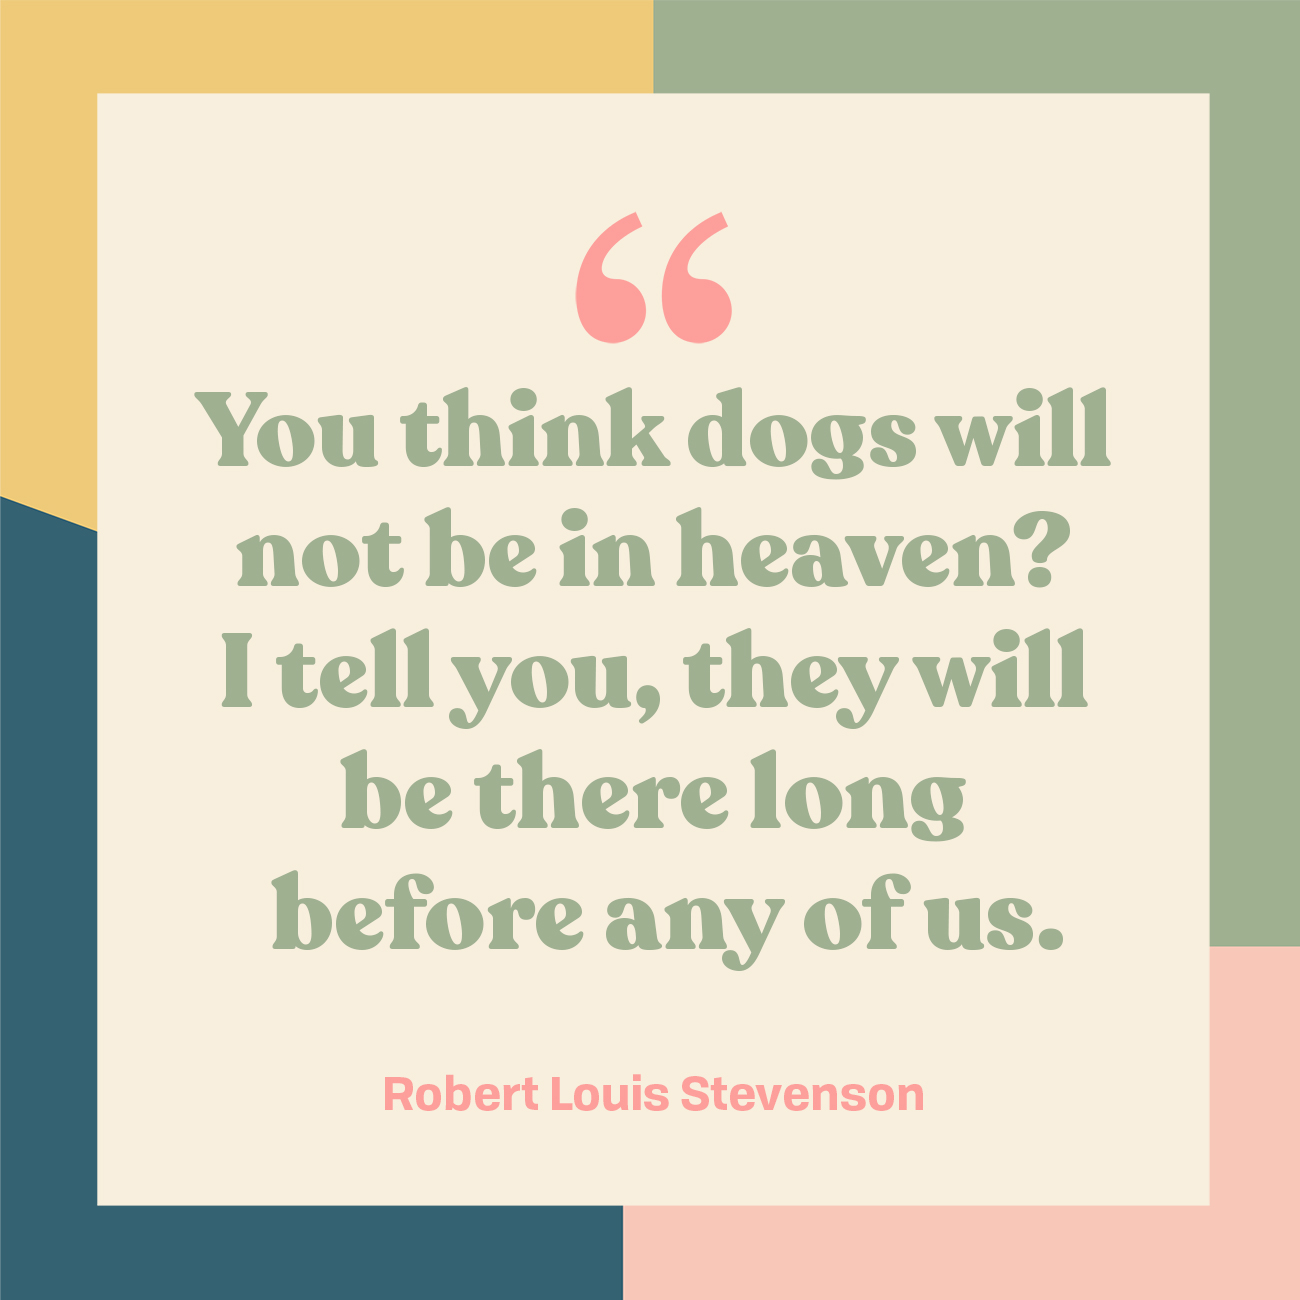 You think dogs will not be in heaven? I tell you, they will be there long before any of us.